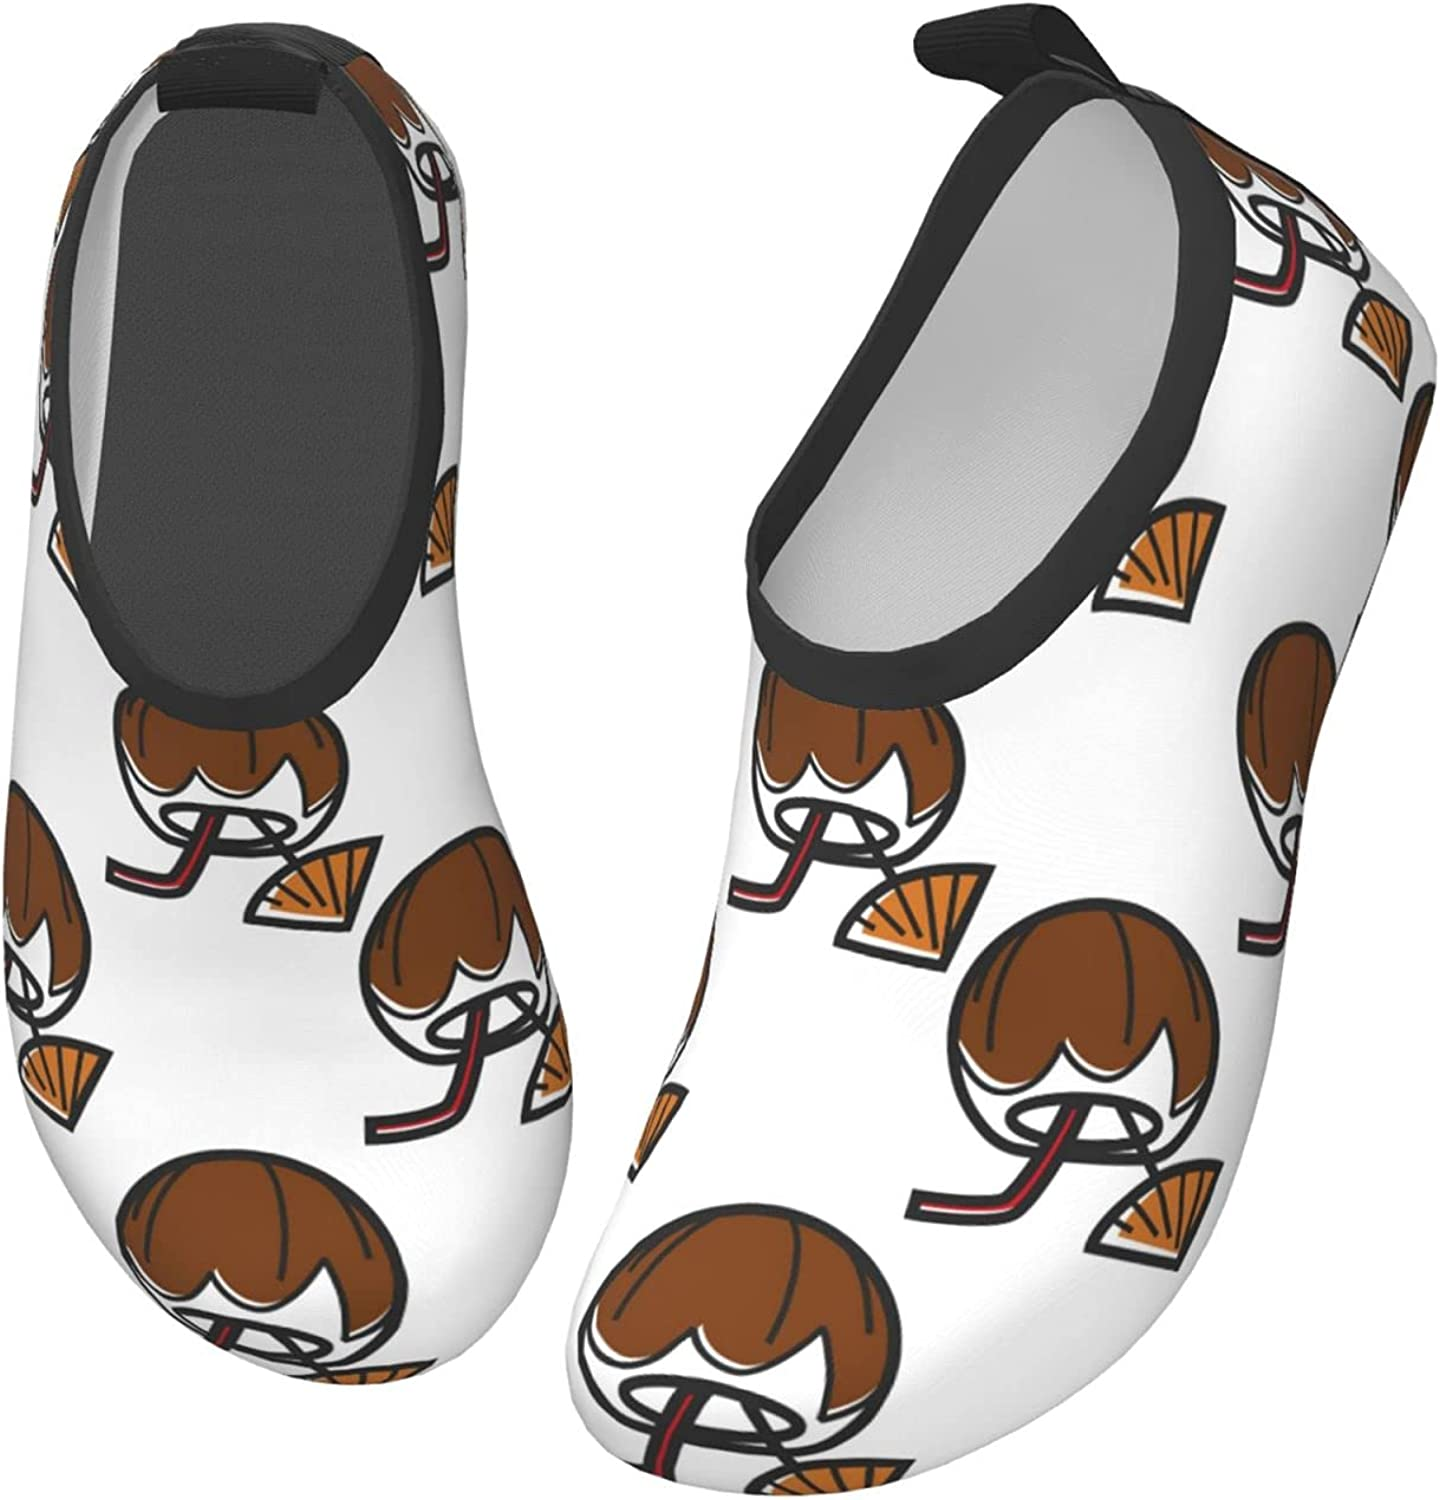 Jedenkuku Summer Style Coconut Hawaii Children's Water Shoes Feel Barefoot for Swimming Beach Boating Surfing Yoga